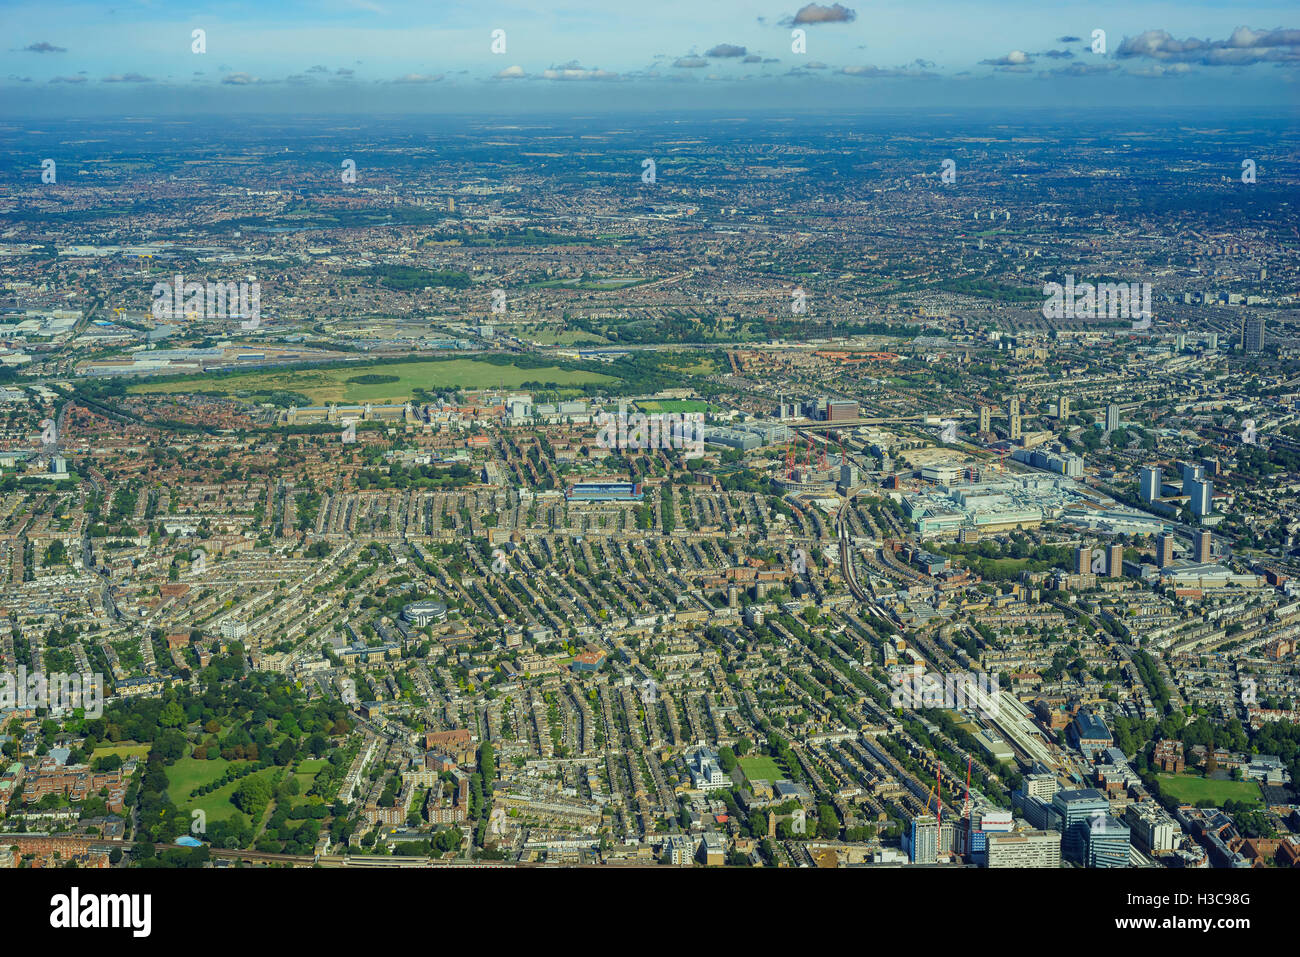 Aerial view of West Acton, East Acton, Emlyn Gardens, Bedford Park, White City, Shepherd's Bush of London, United - Stock Image